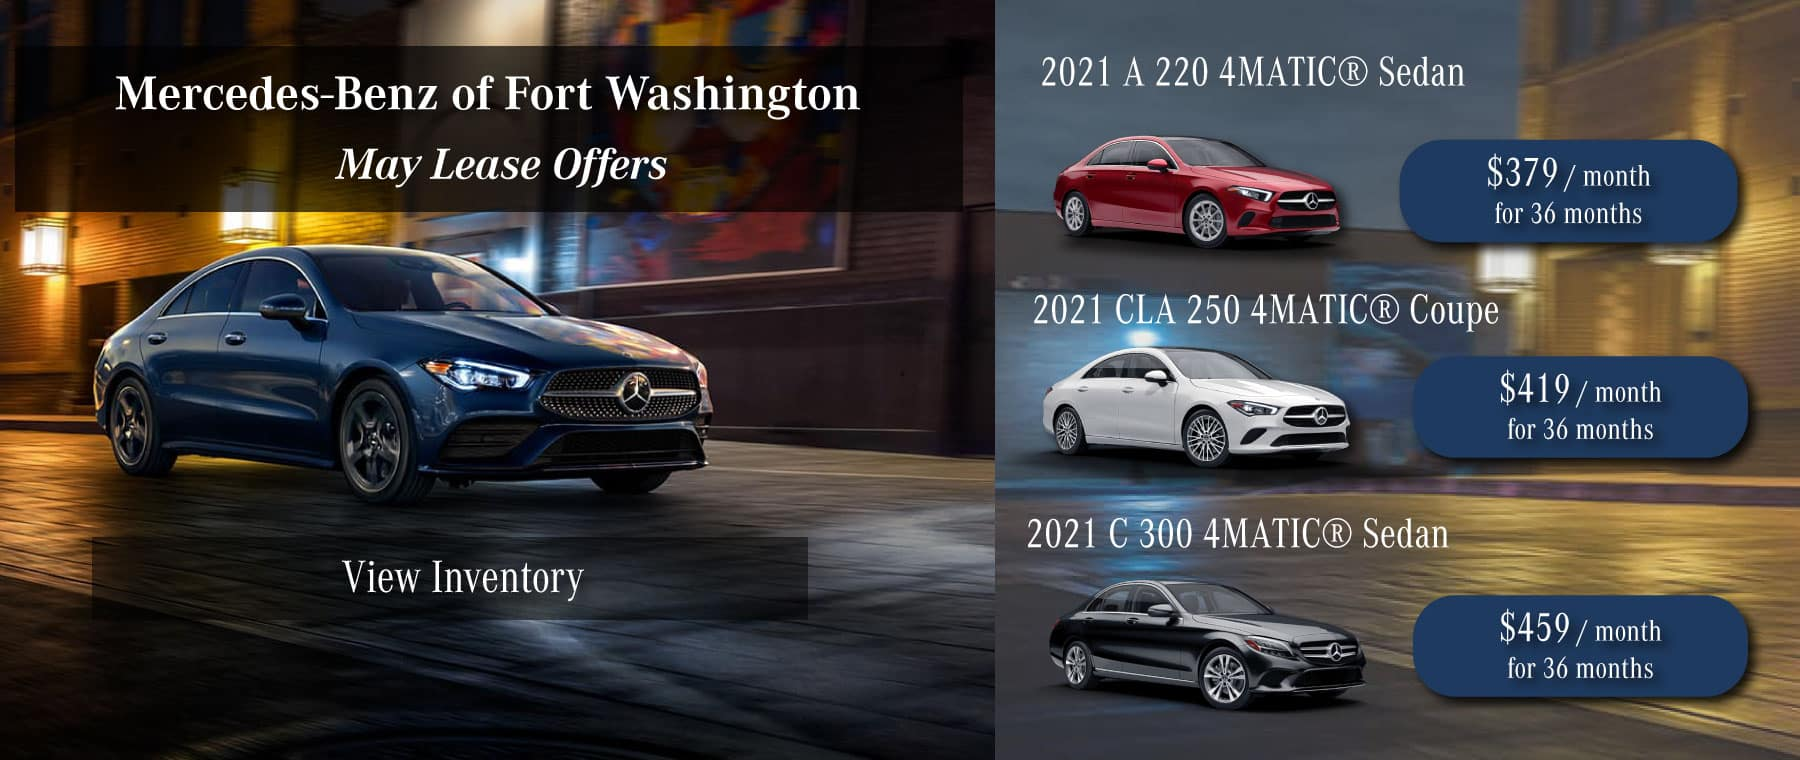 mercedes-benz of fort washington lease specials